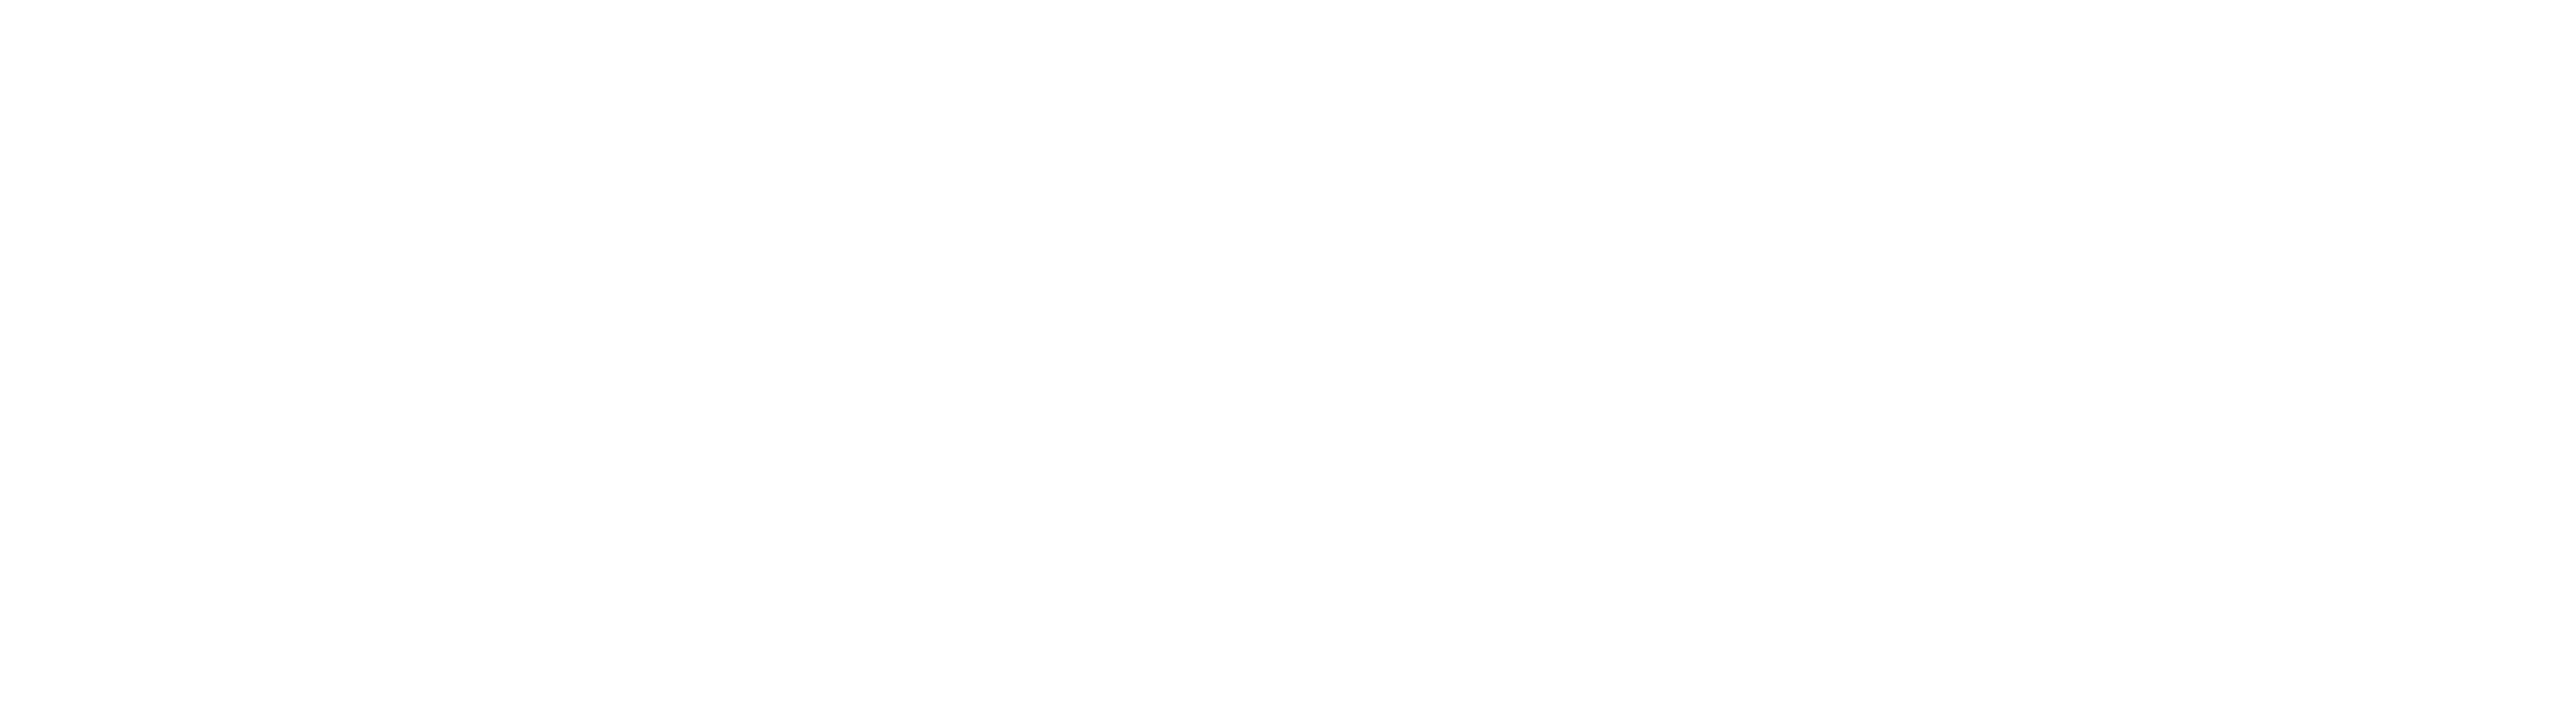 Chicago Urban League